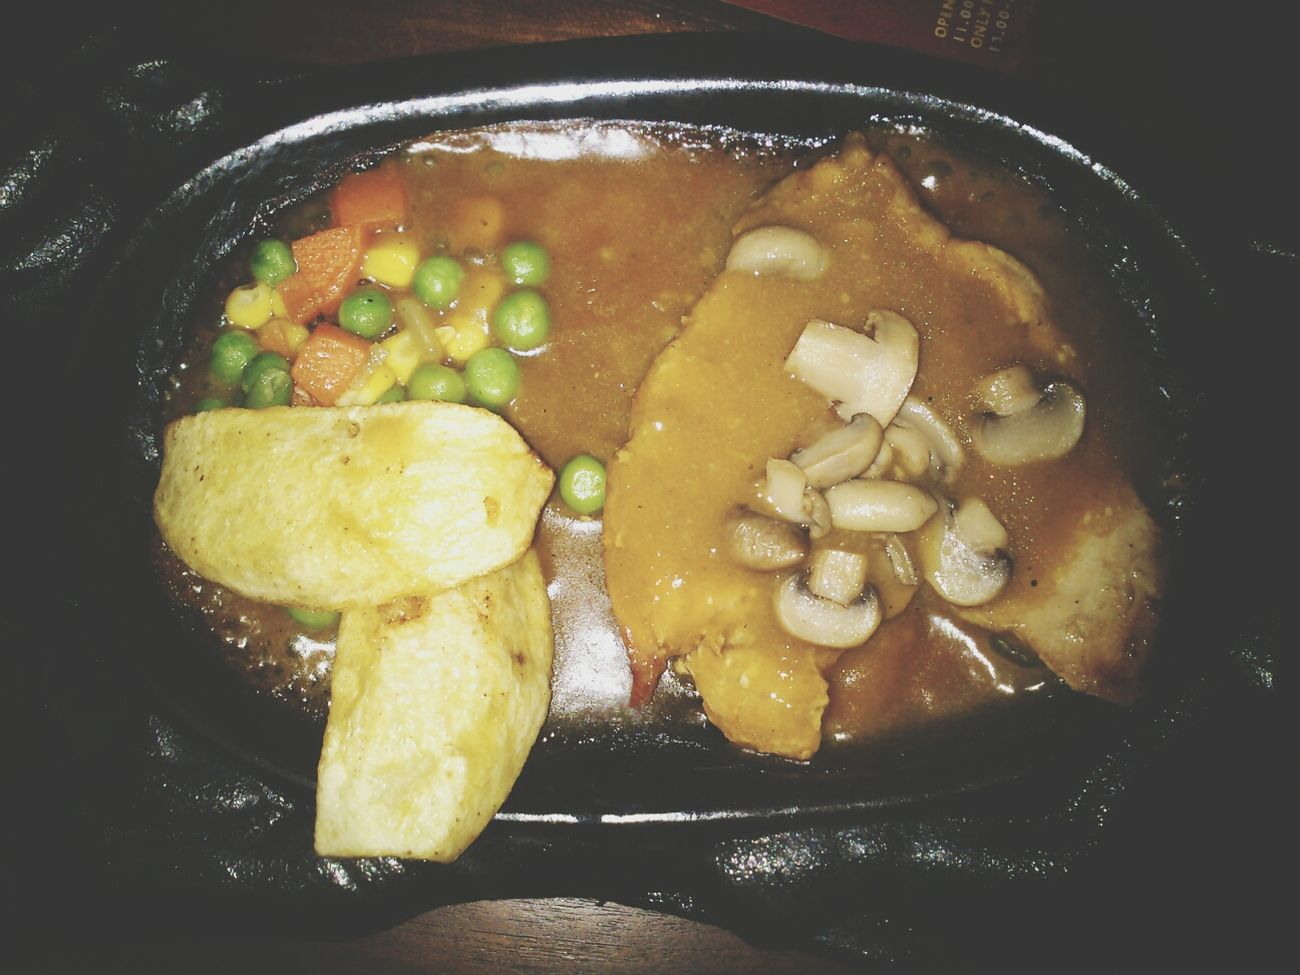 Dinner Steak Chicken Steak Food